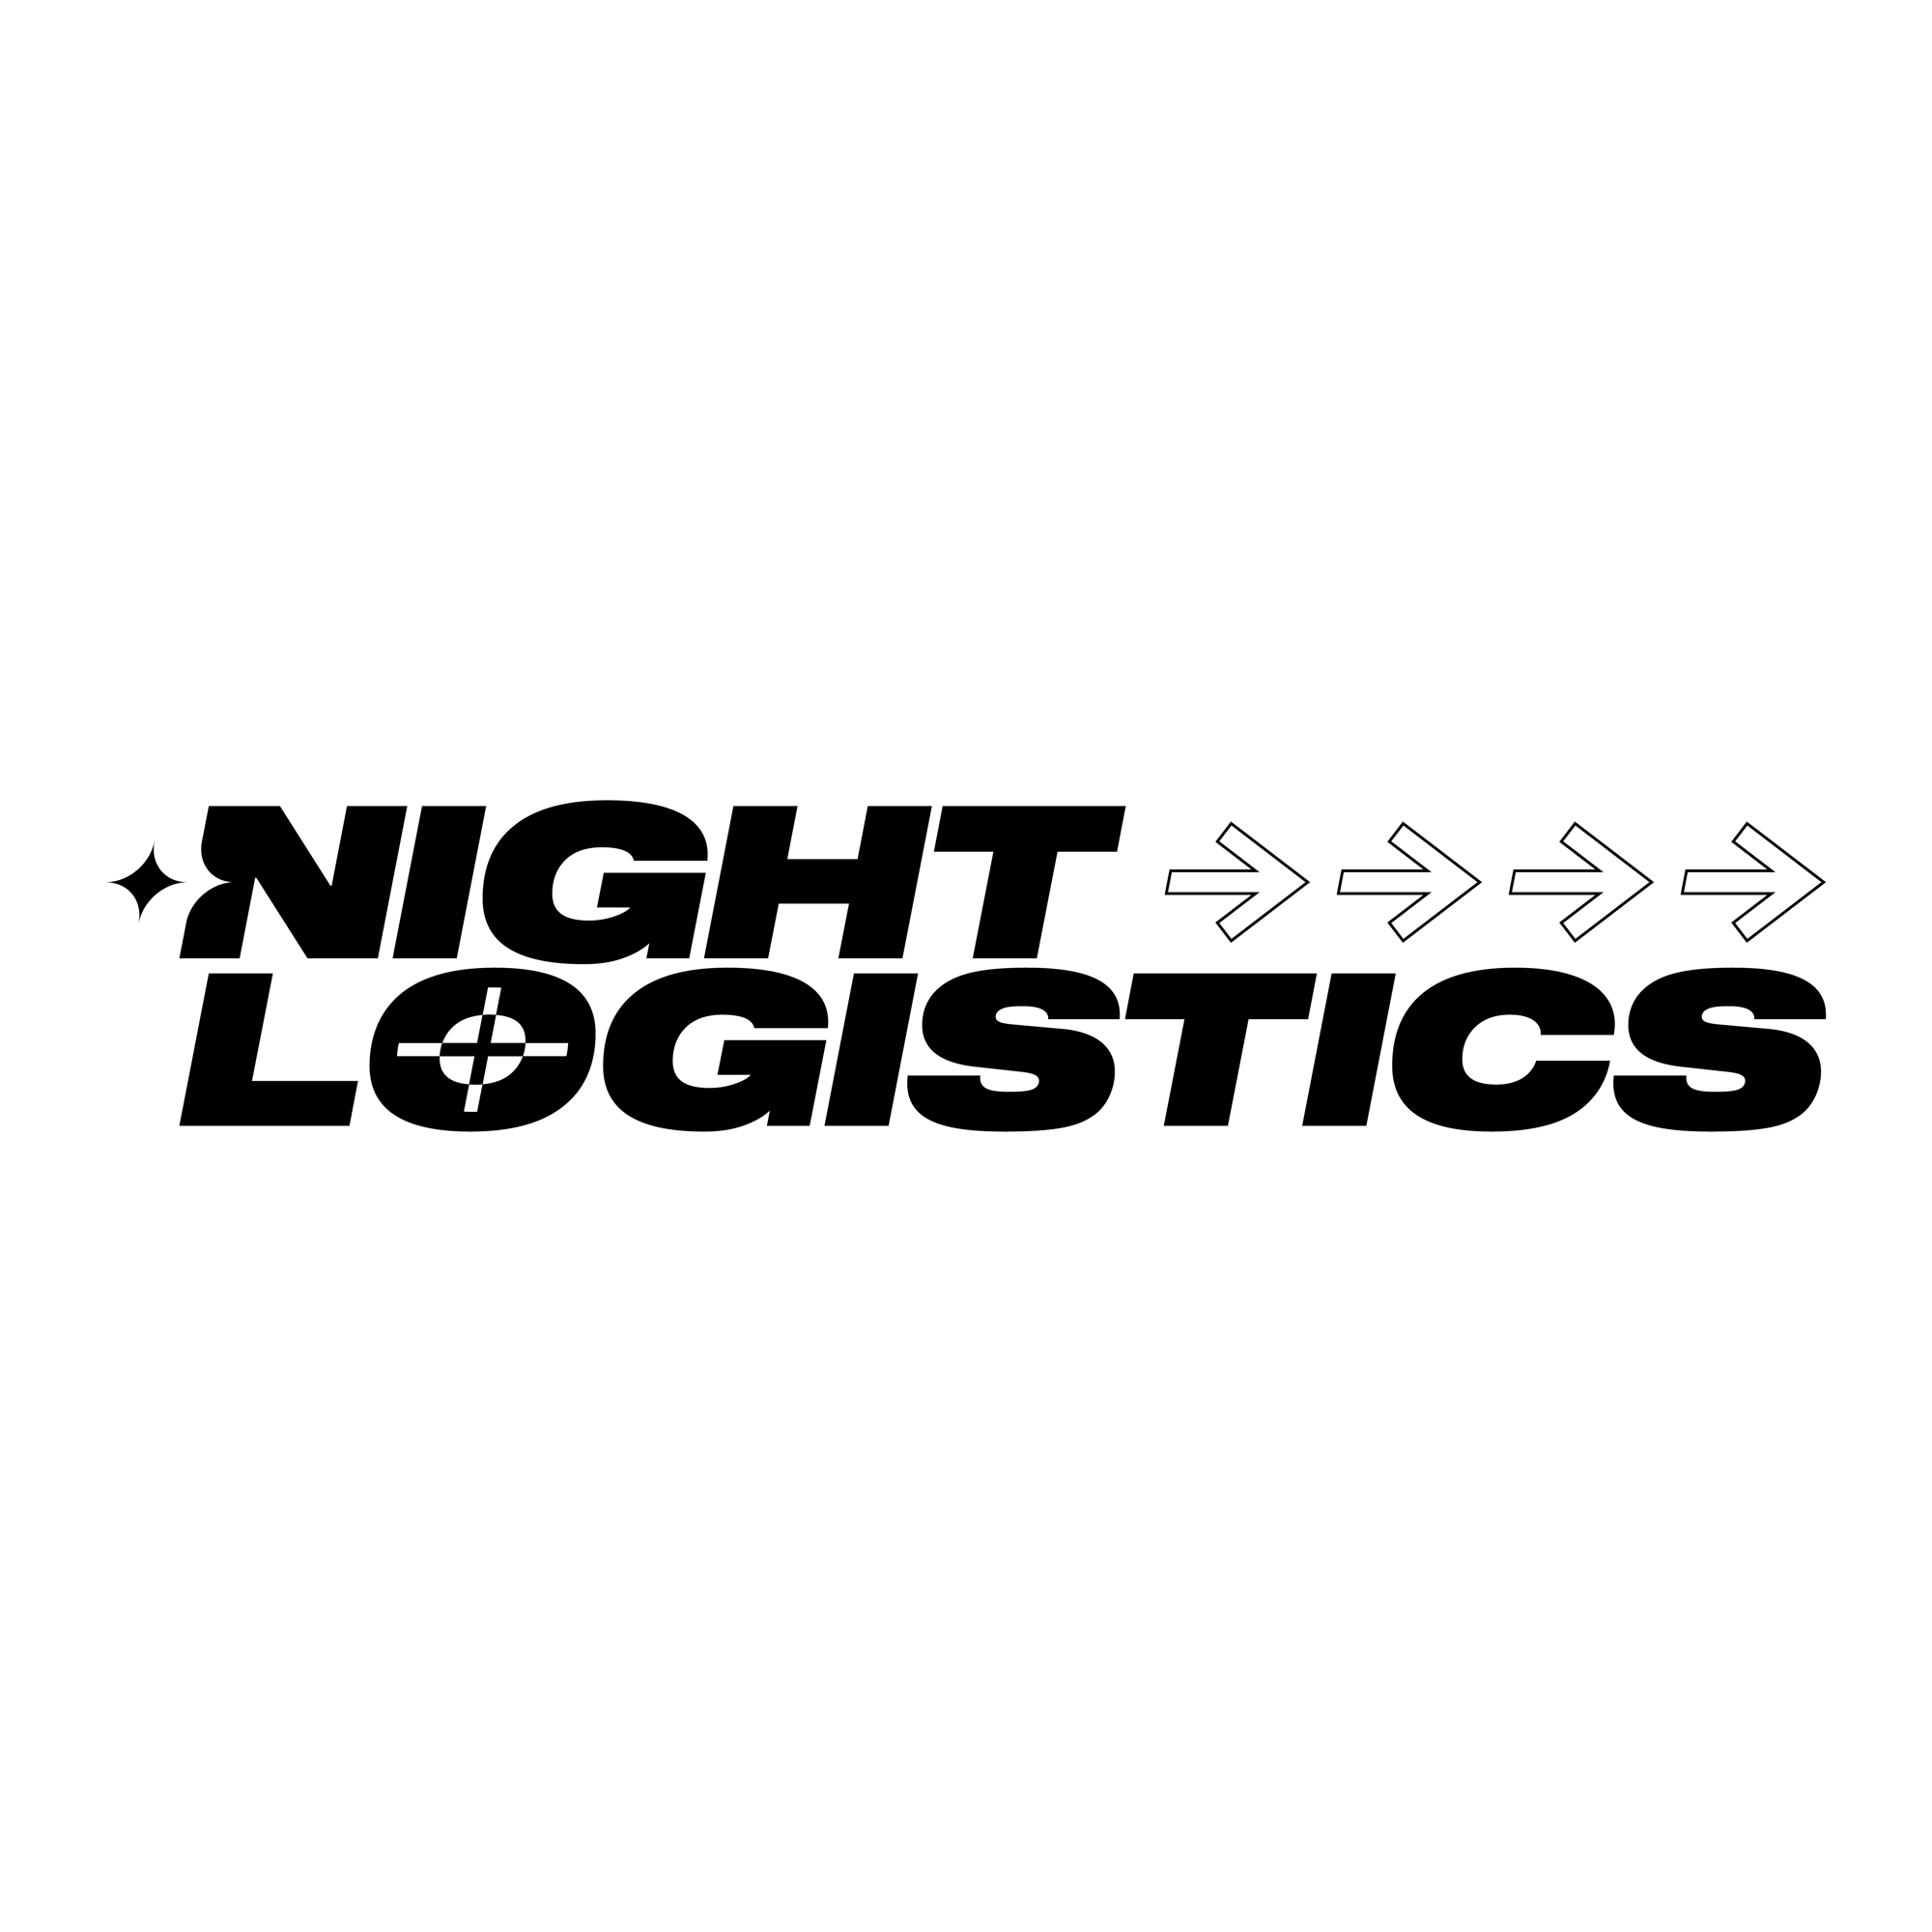 Night logistics - Night Logistics is a small party crew in Chicago focusing on showcasing local music talent with skilled national producers.